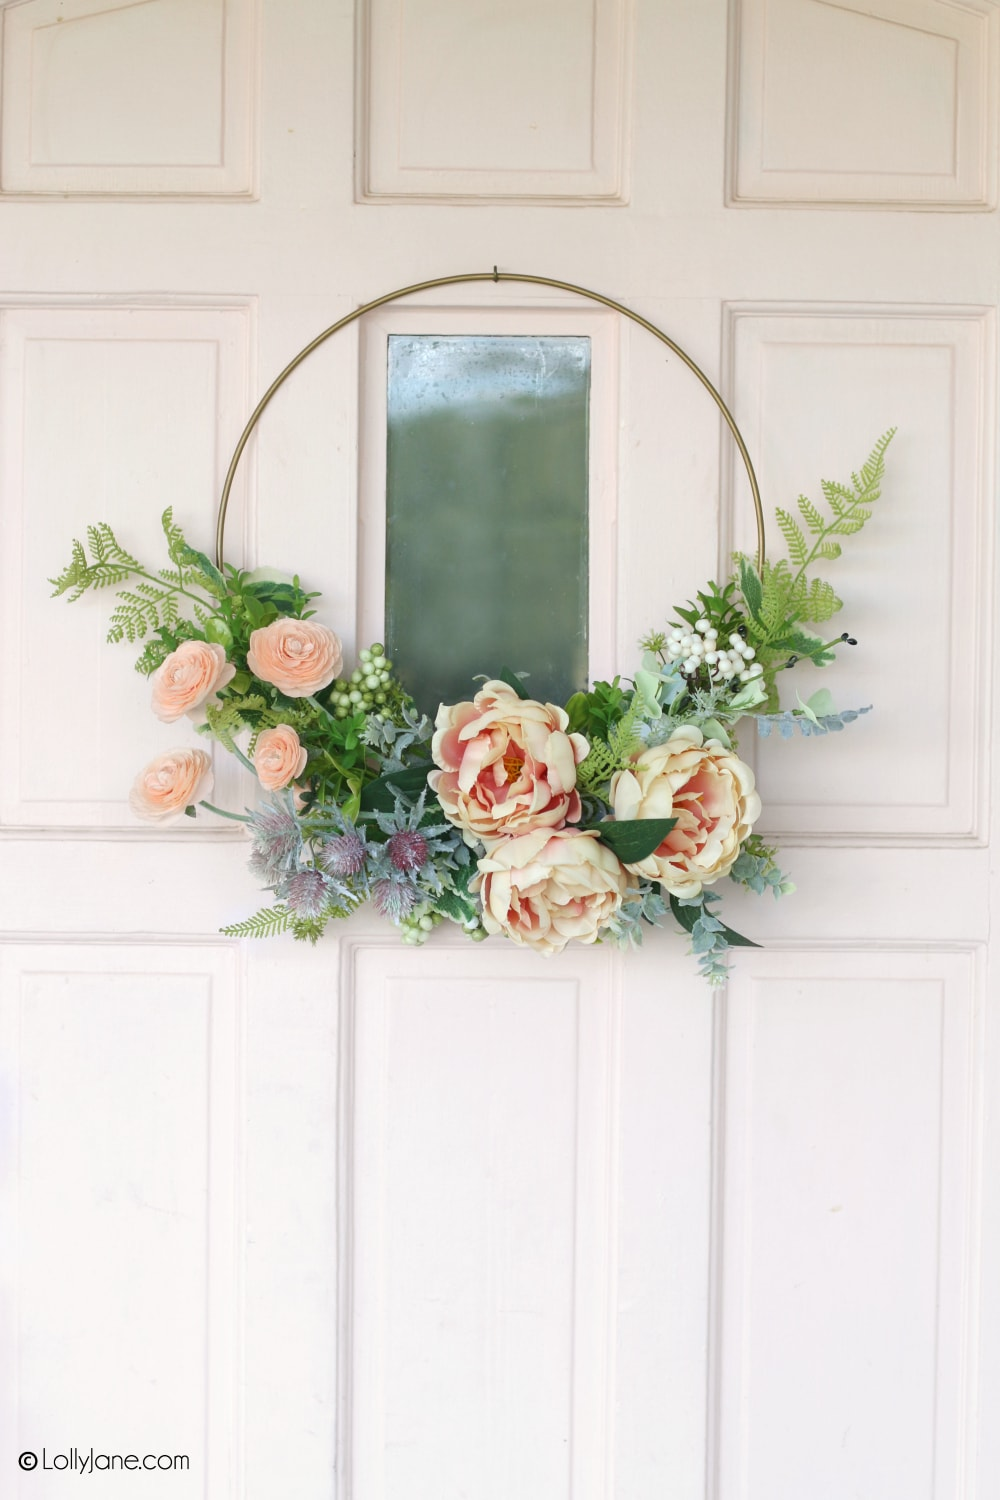 Beautiful Modern Floral DIY Wreath, made in 10 minutes! Get your spring craft on with this easy how-to! #diy #spring #floralwreath #homedecor